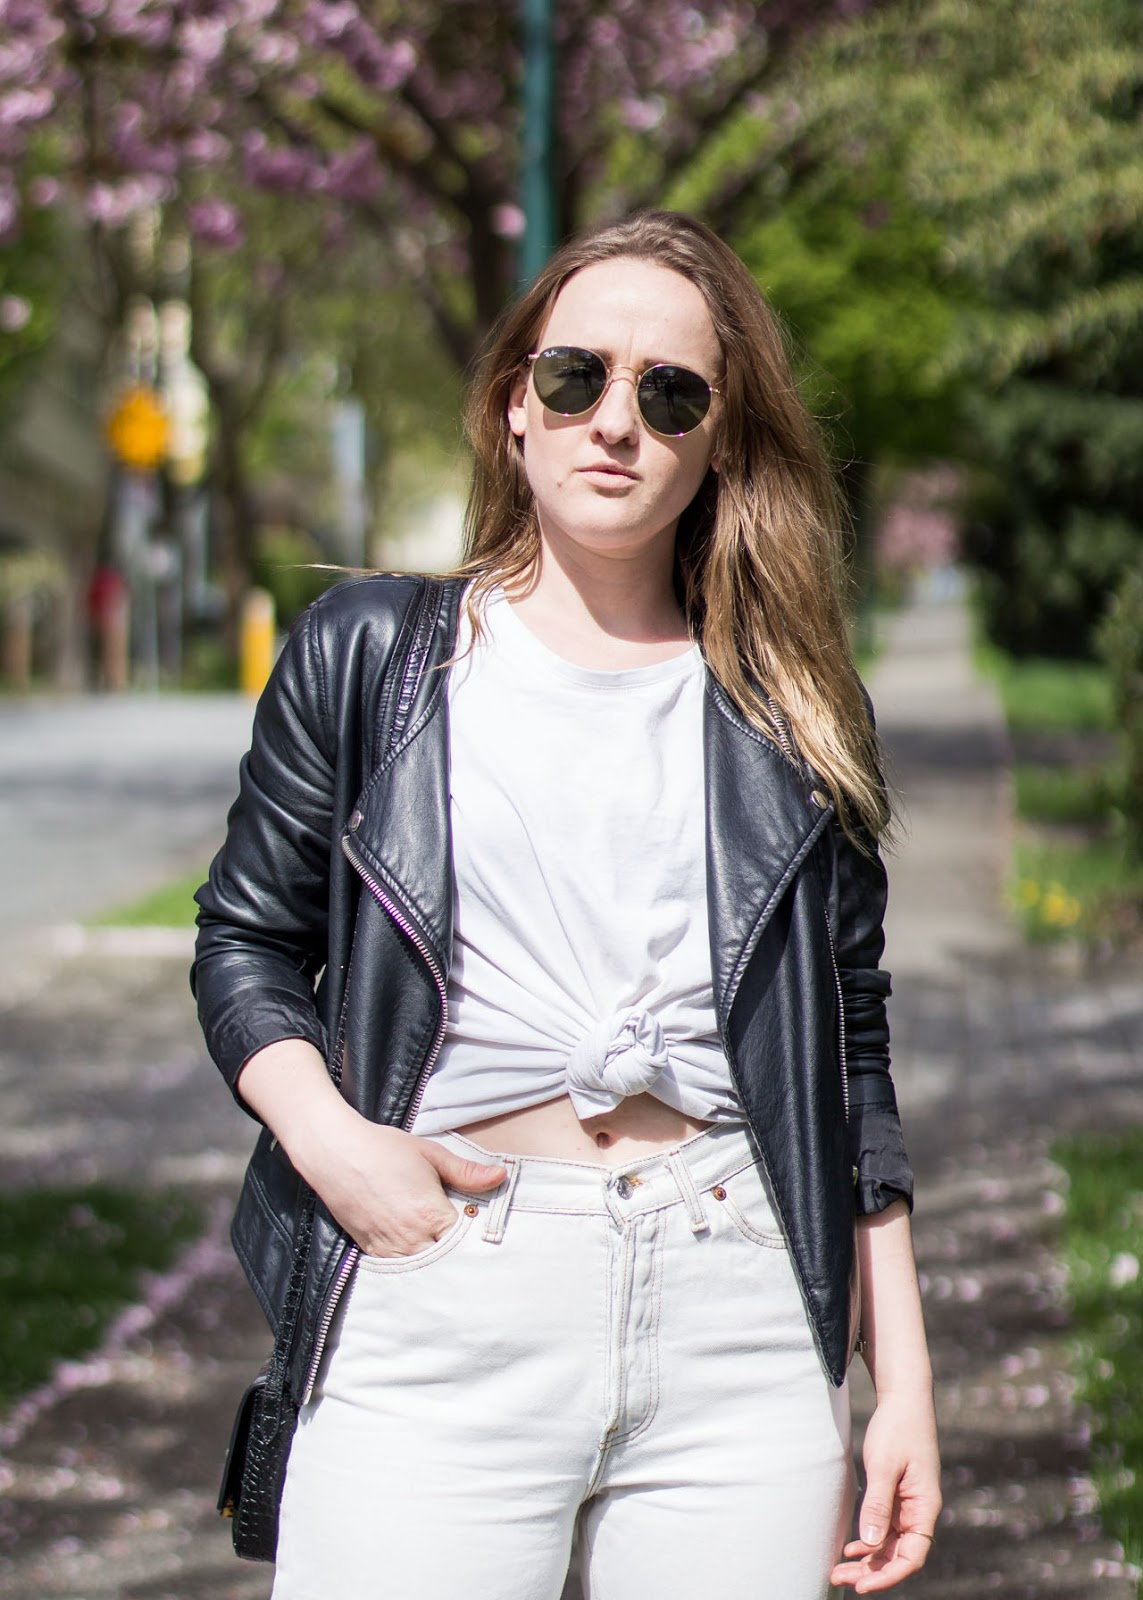 Vancouver Fashion Blog - Personal style - Spring / Summer outfit - white on white